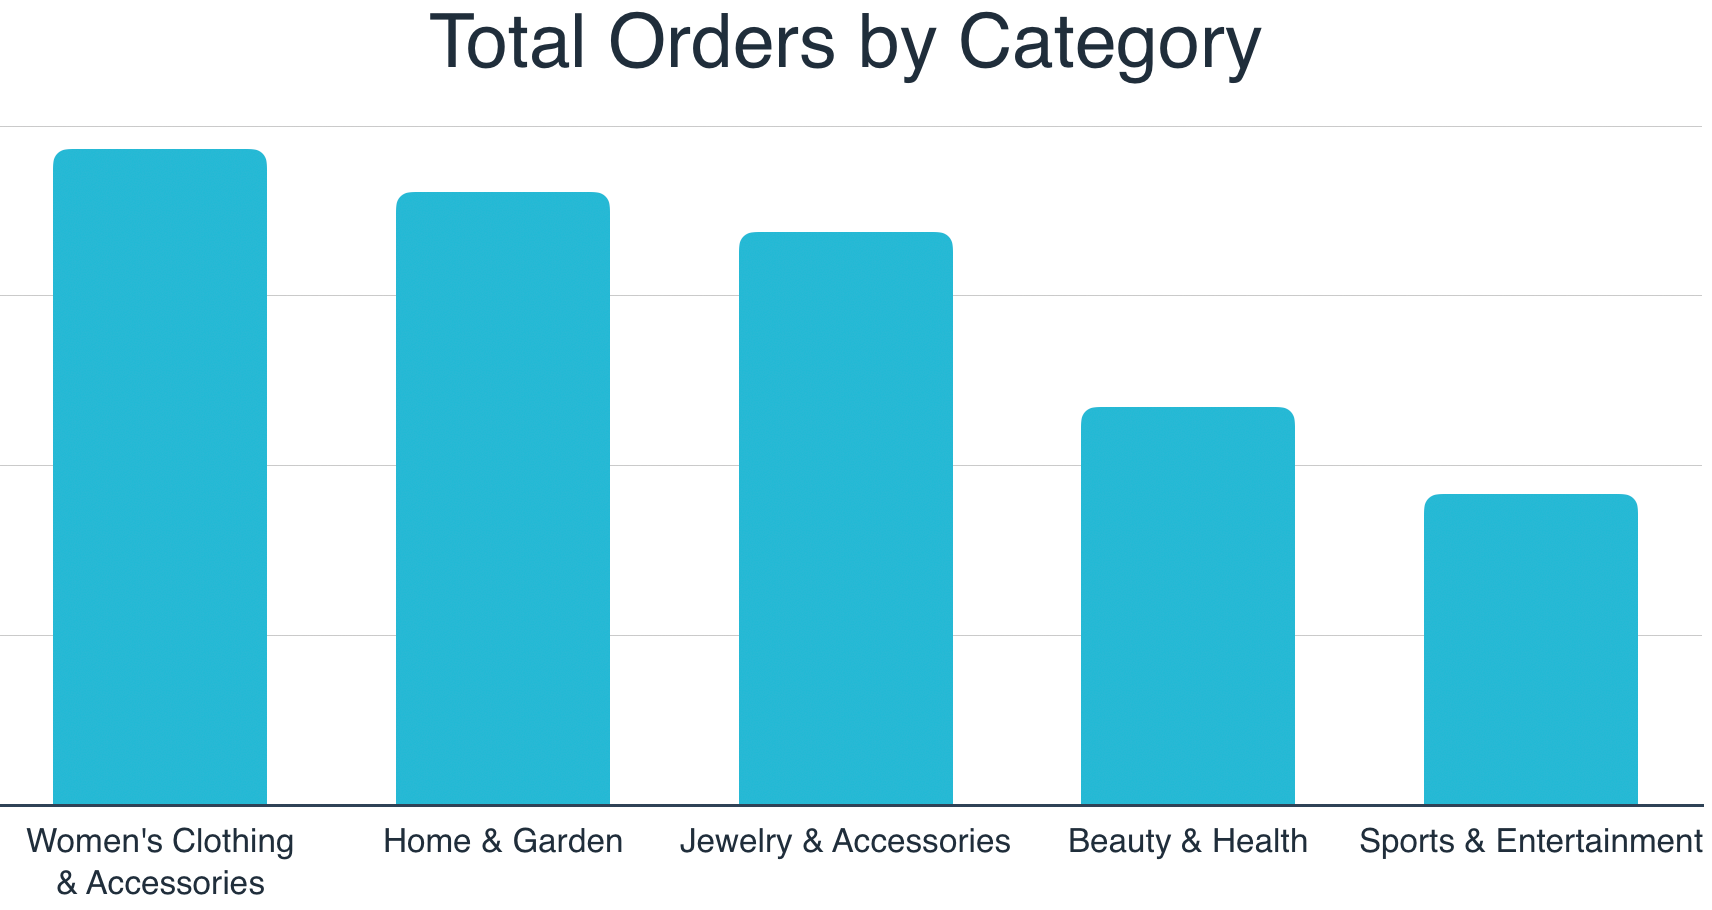 2019 Niche US Markets by Orders